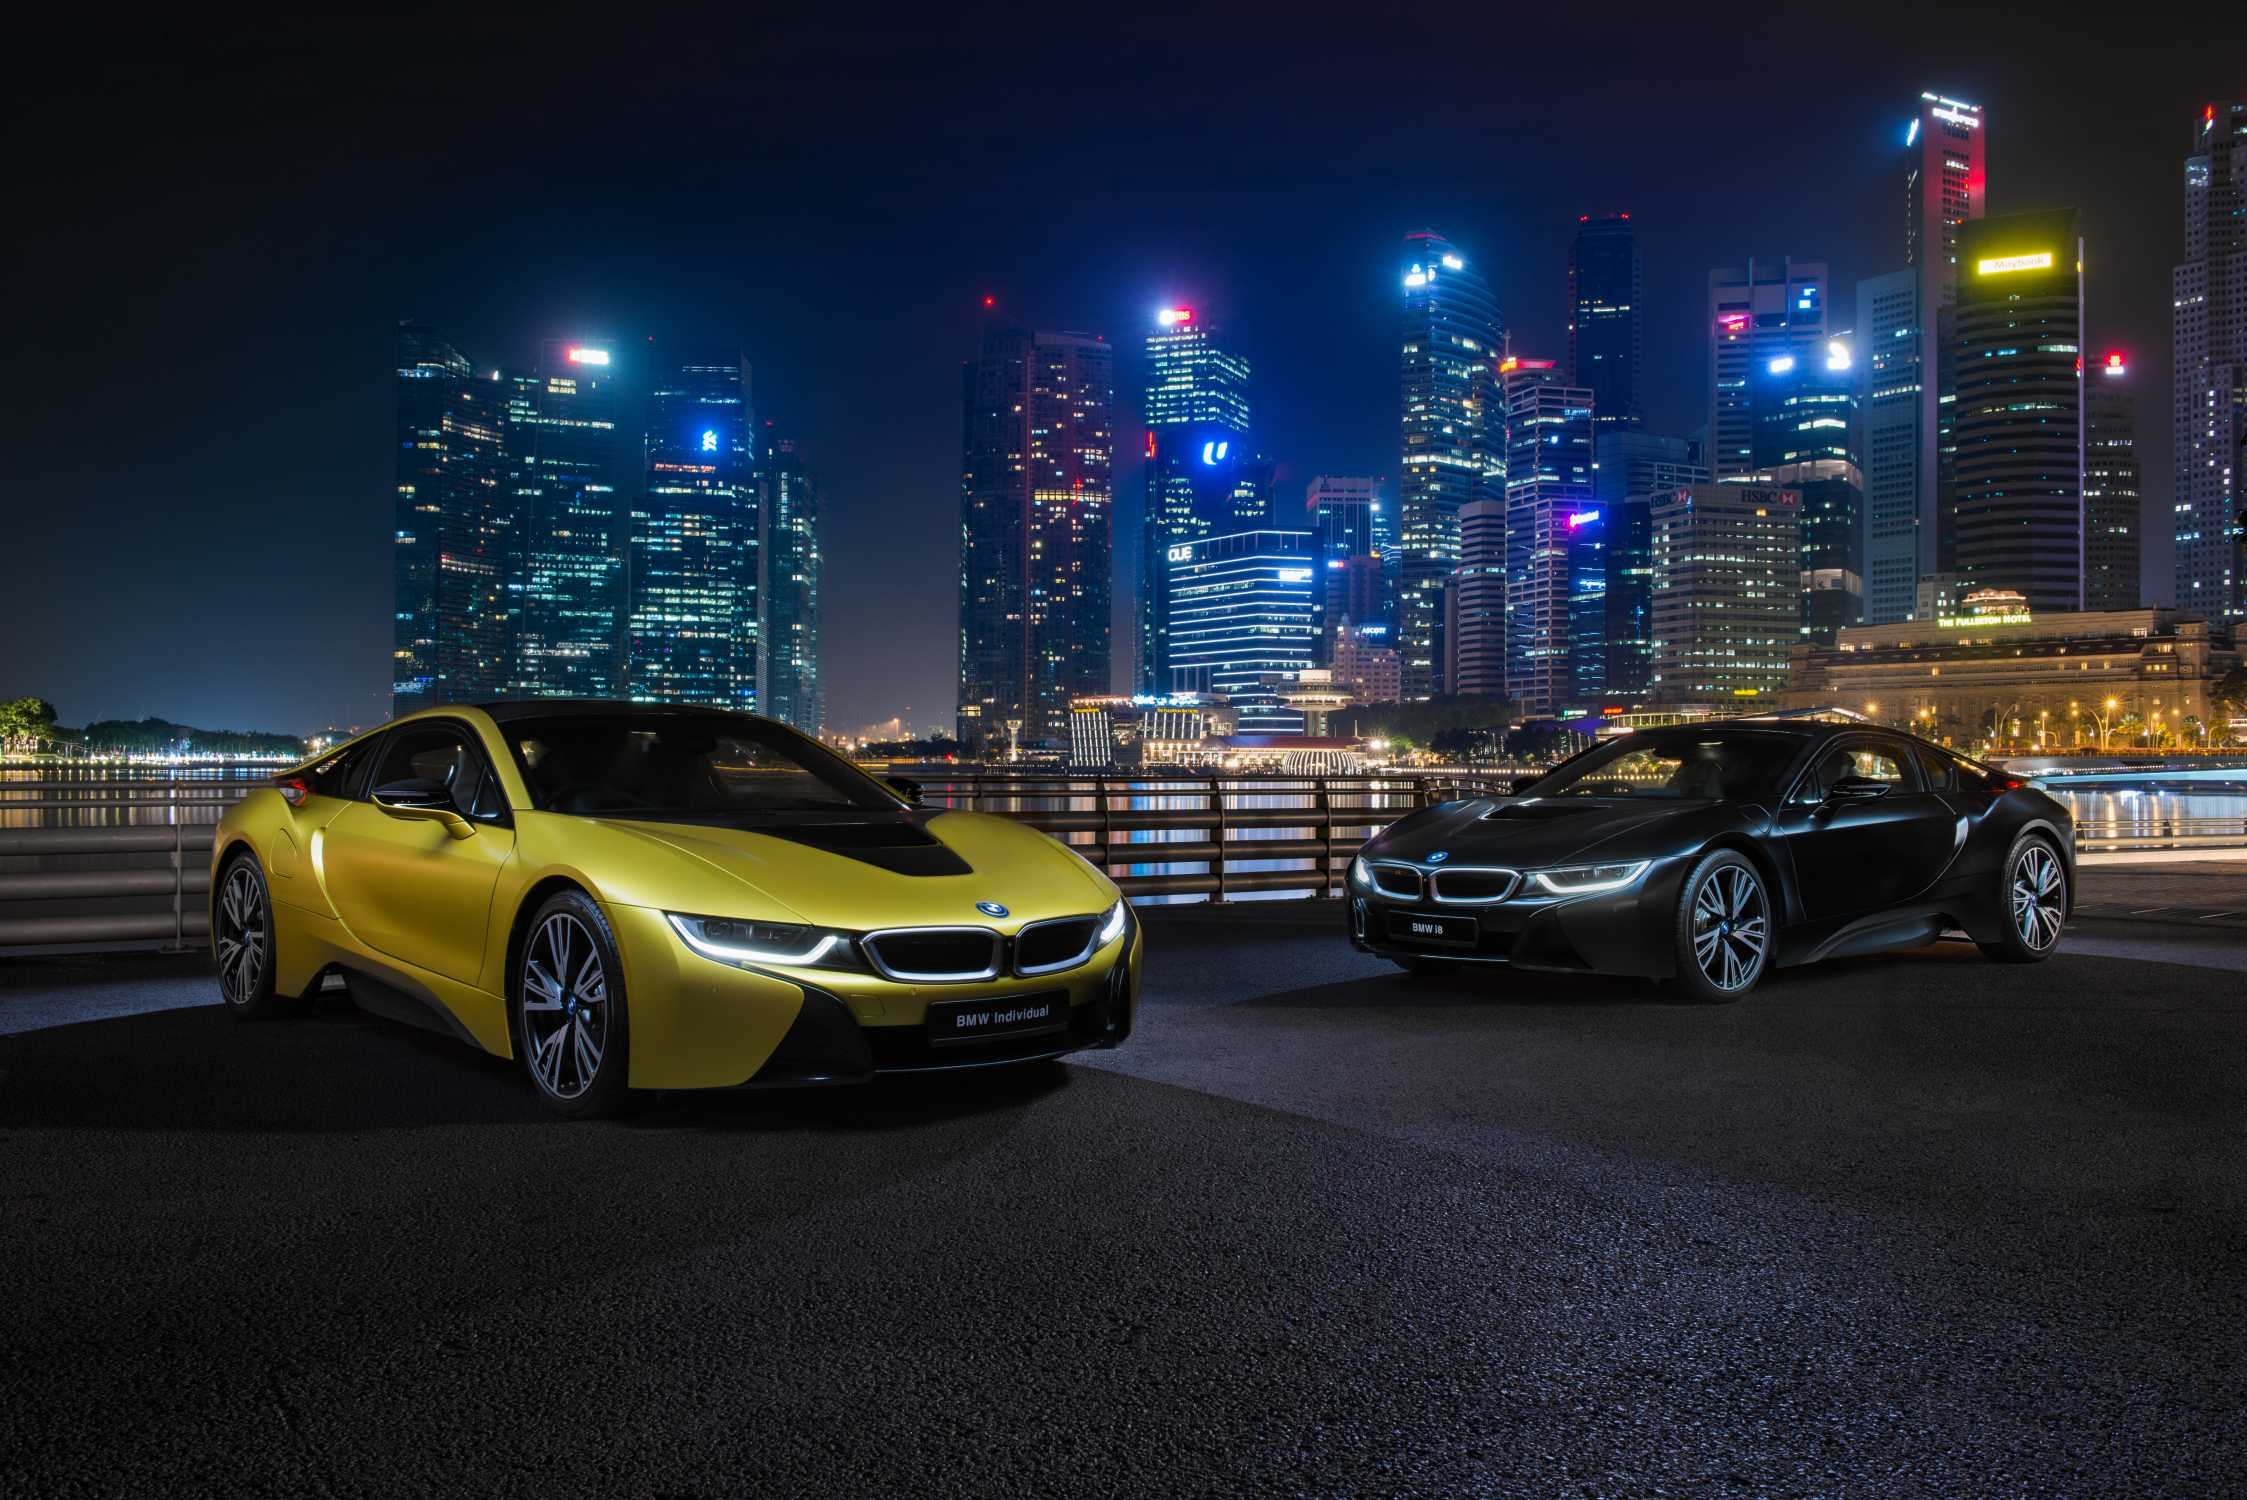 The Exclusive Bmw I8 Protonic Frozen Yellow Edition Now Available In